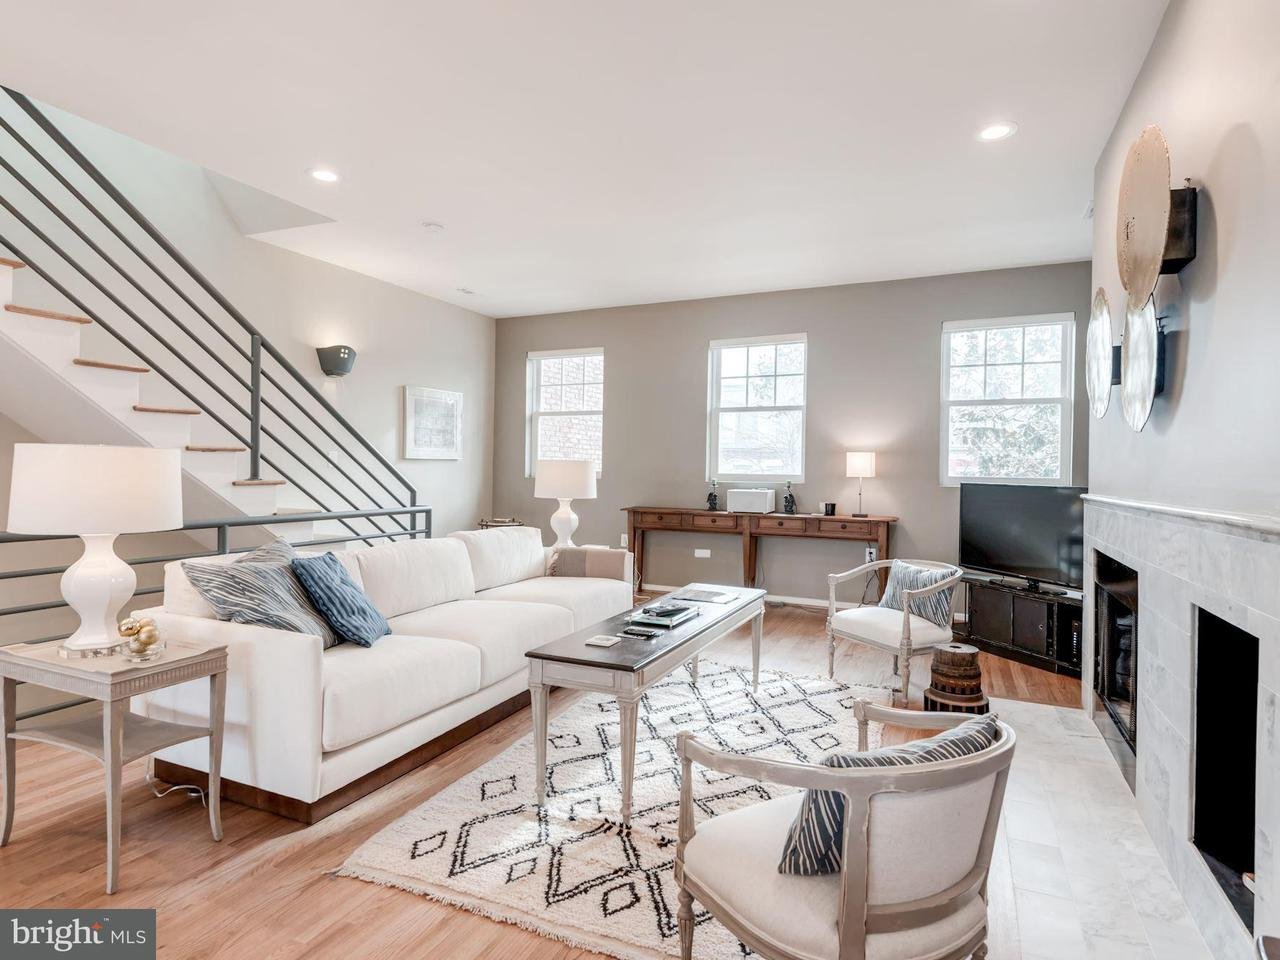 Single Family for Sale at 1443 S St NW #2 Washington, District Of Columbia 20009 United States